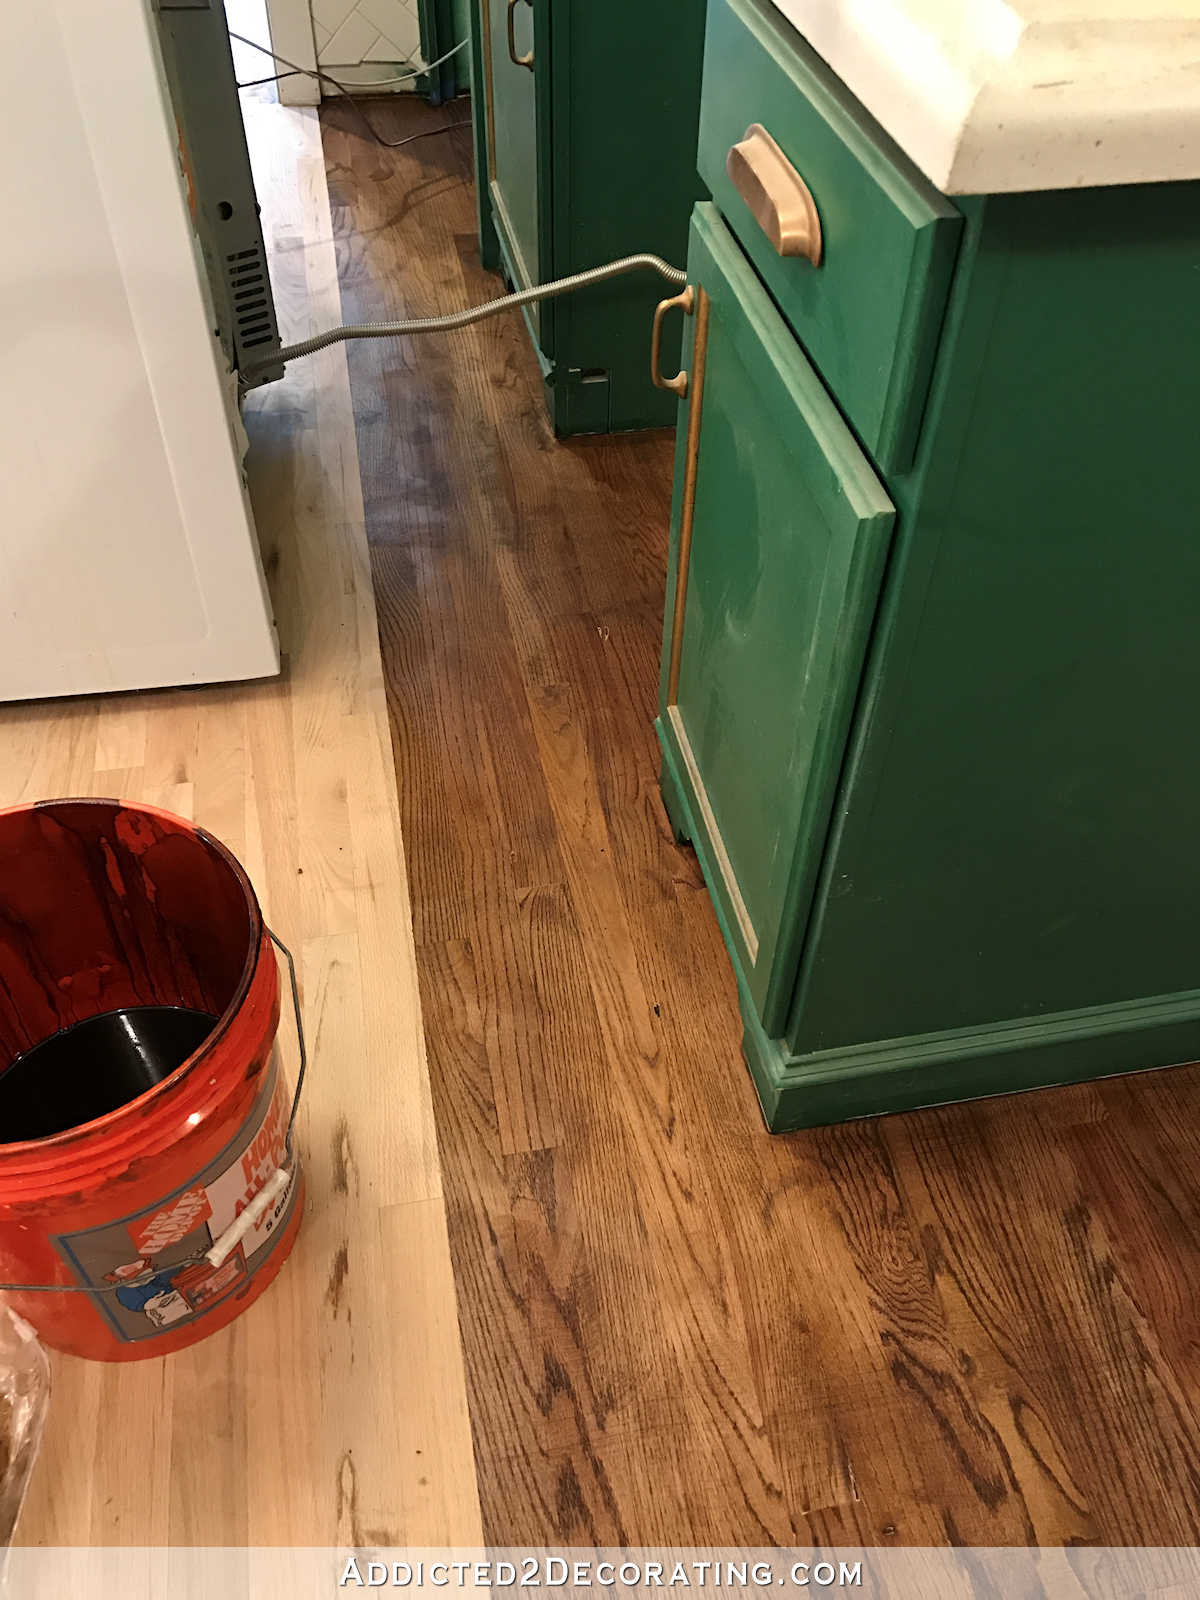 refinish hardwood floors yourself video of adventures in staining my red oak hardwood floors products process for staining red oak hardwood floors 10 stain on kitchen floor behind stove and refrigerator